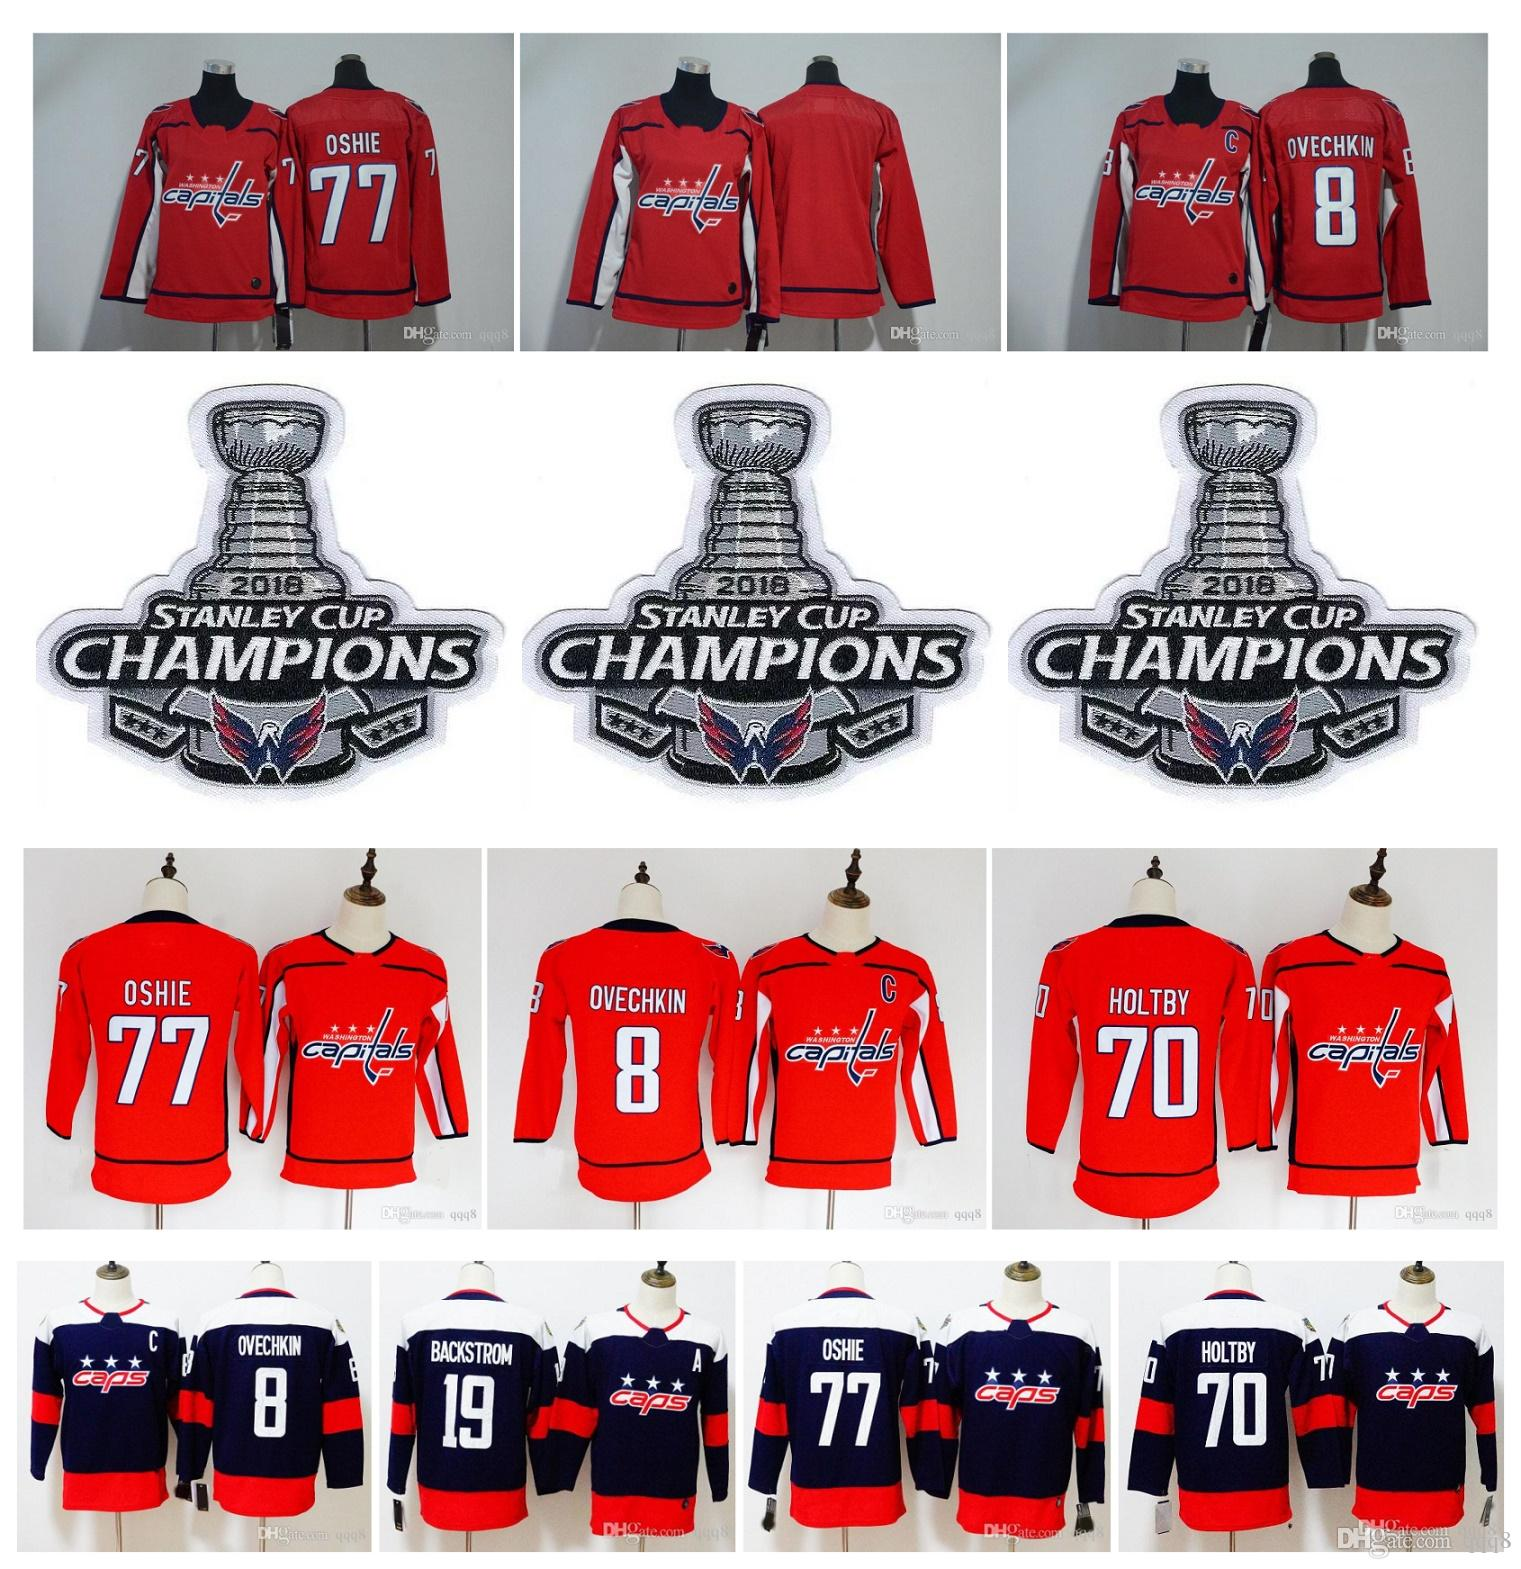 e9589494d 2018 Stanley Cup Champion Patch Kids Youth Washington Capitals Jersey Alex  Ovechkin TJ Oshie Braden Holtby Backstrom Wome Hockey Jersey UK 2019 From  Qqq8